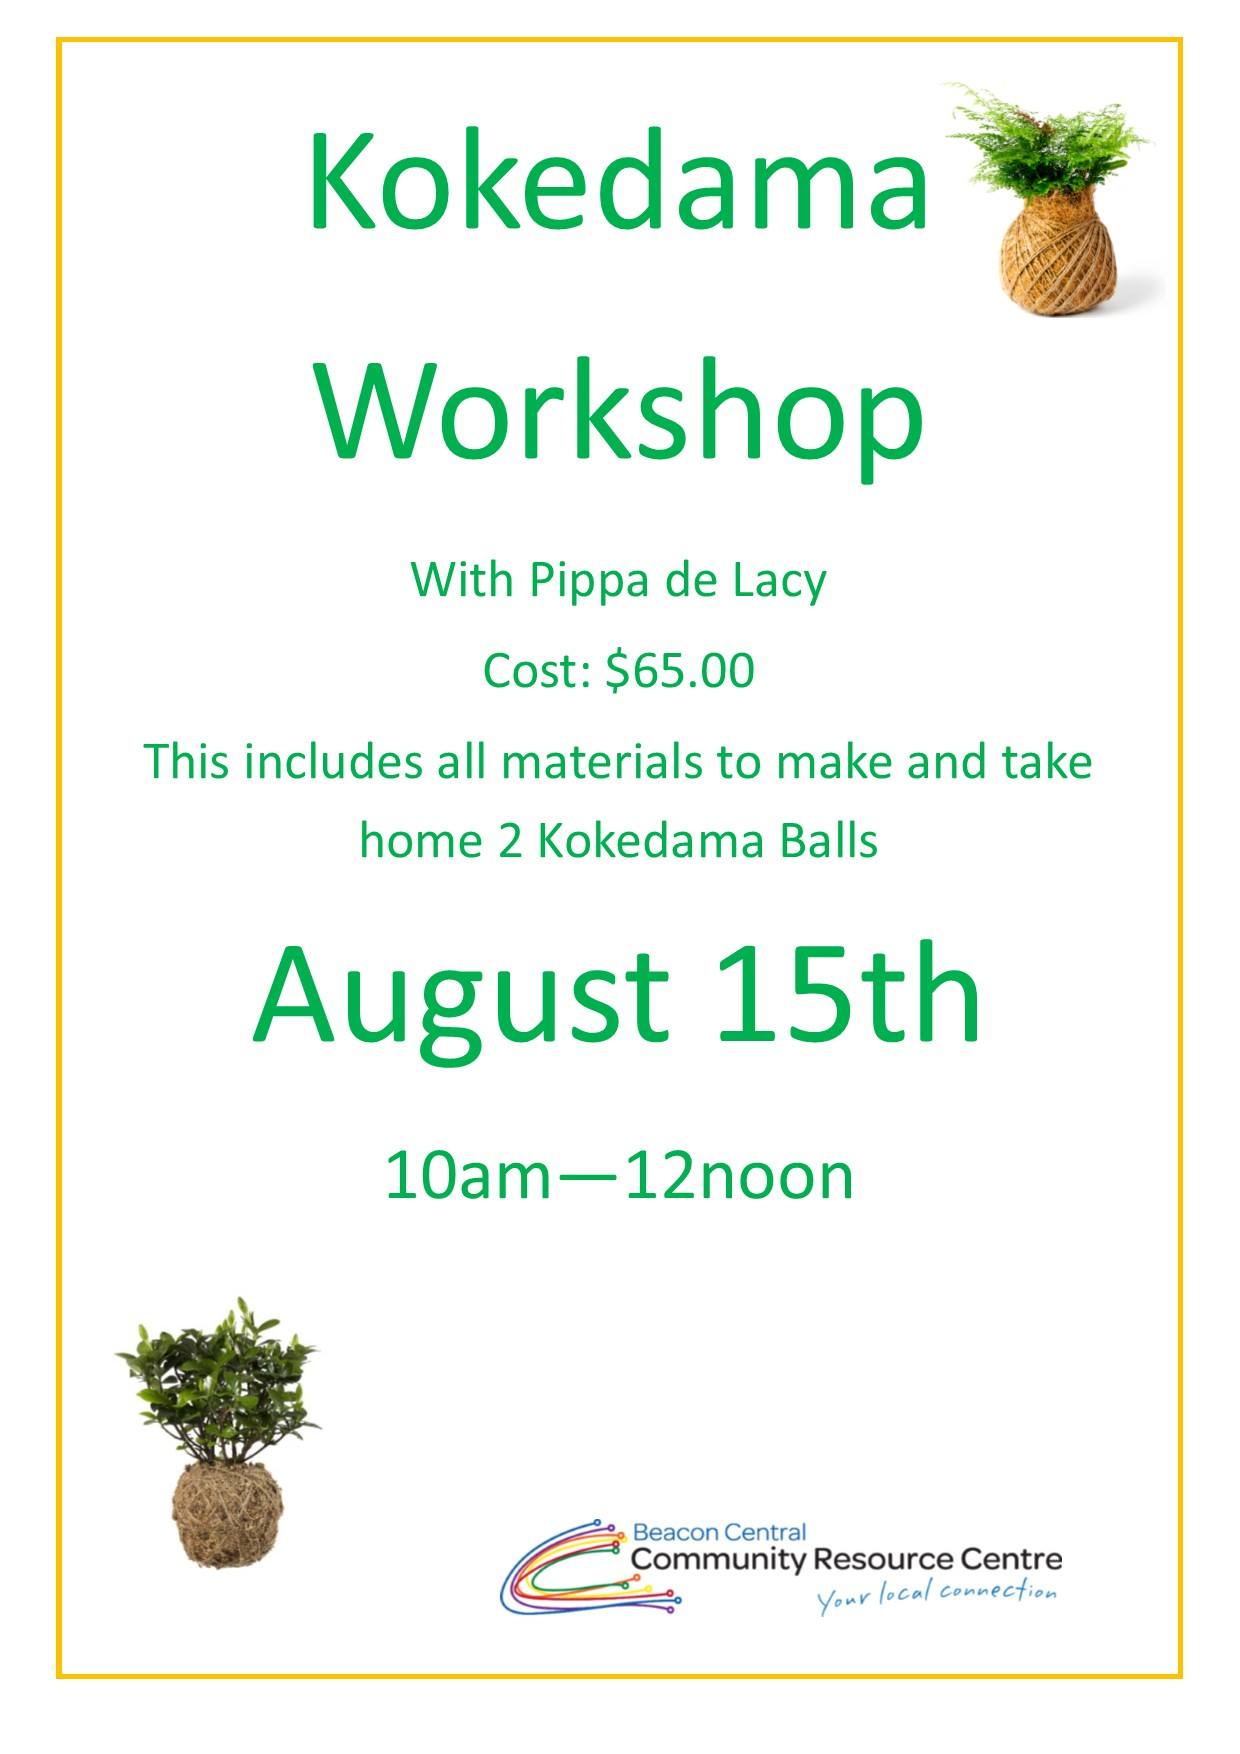 kokedama workshop promotion at Beacon Central CRC